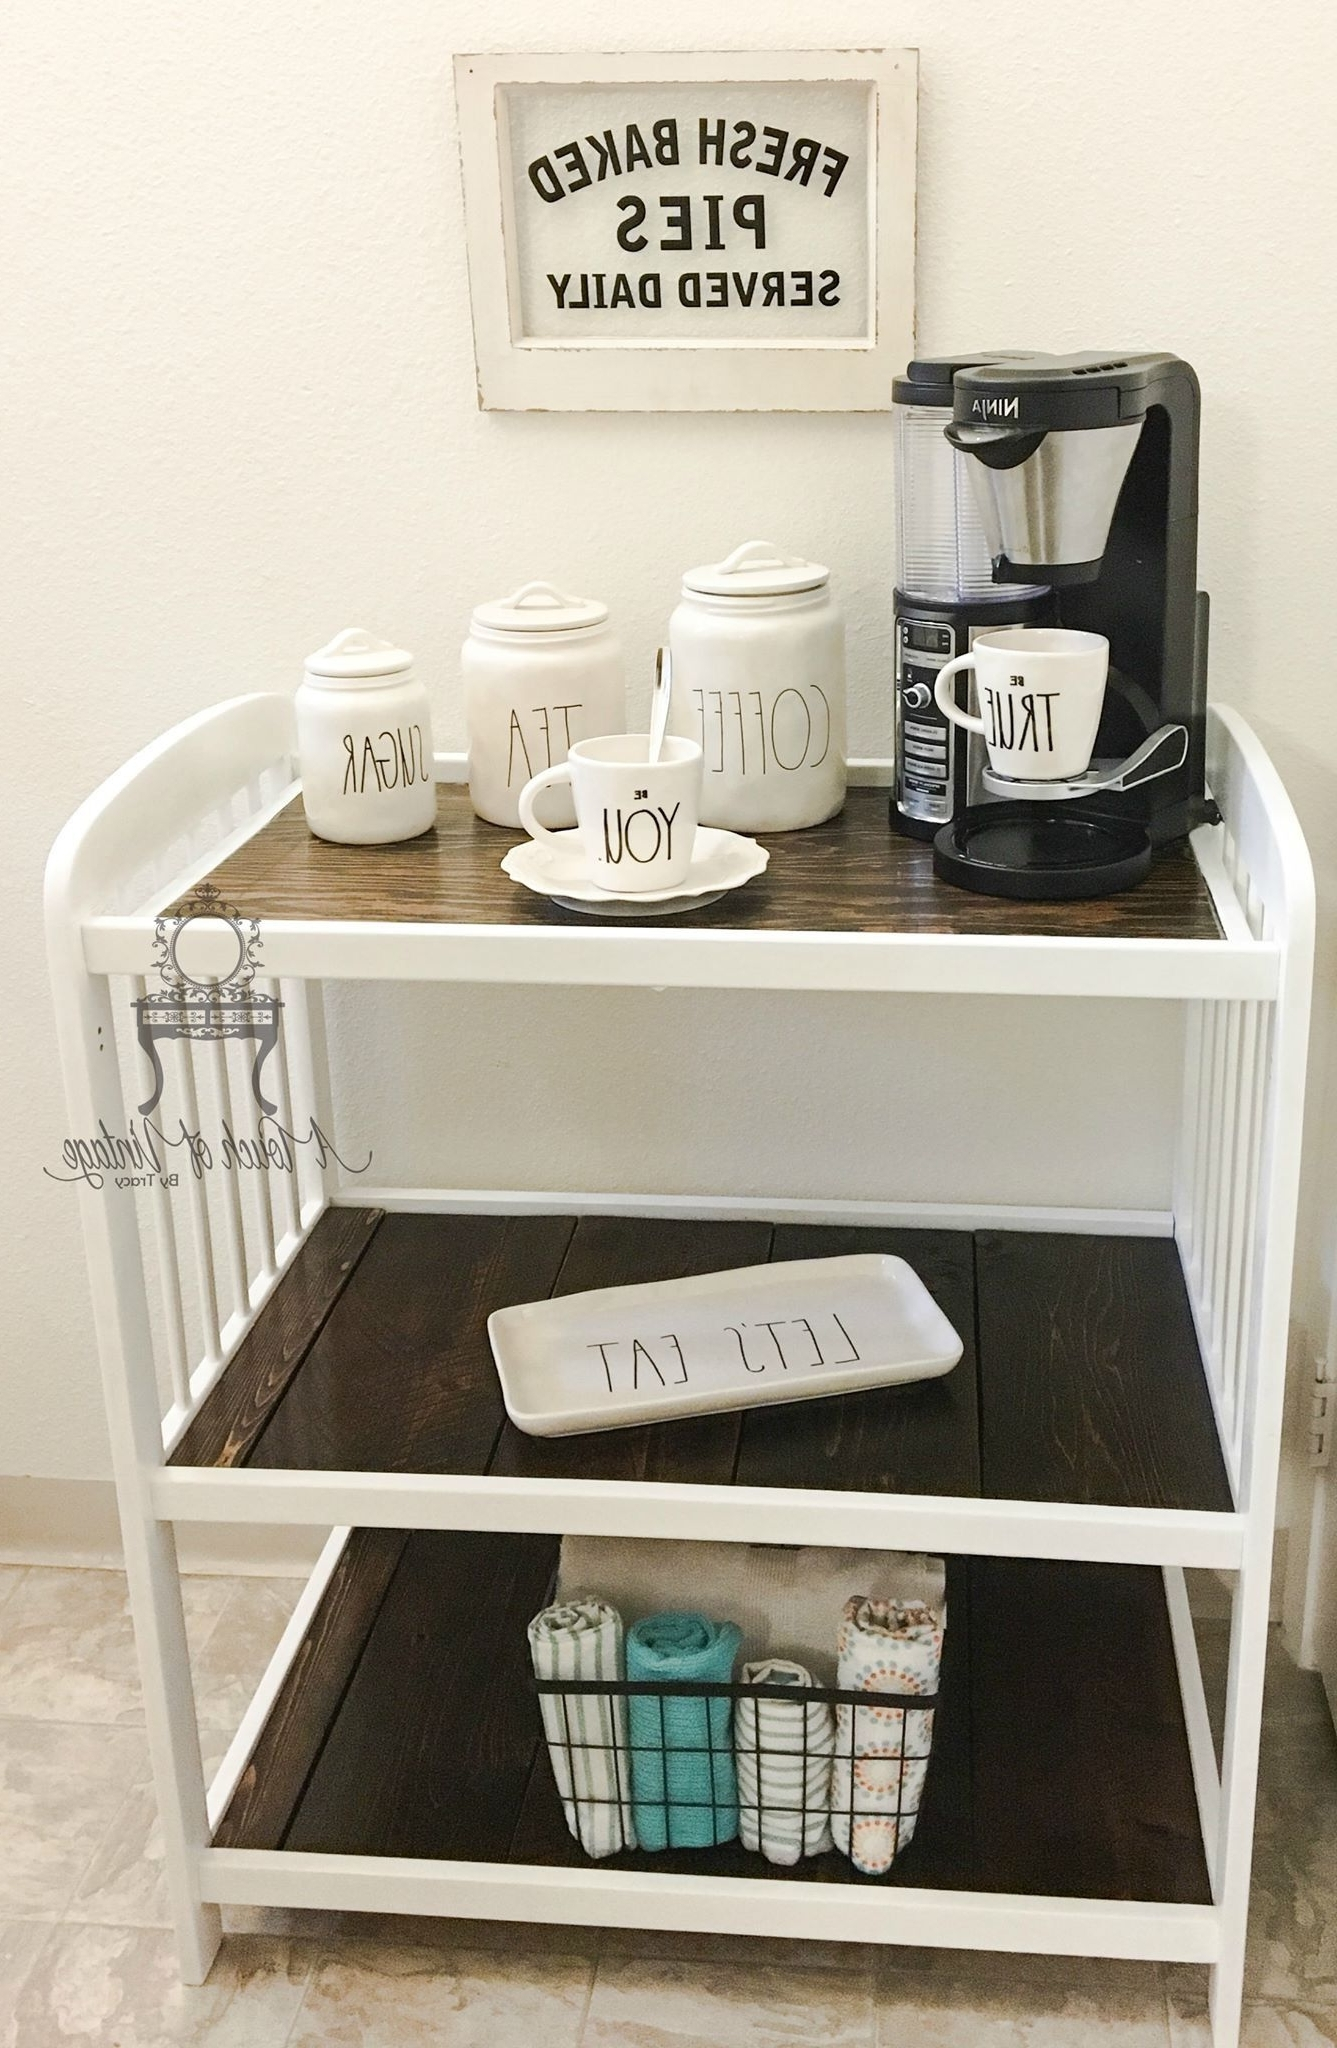 Baby Changing Table Repurposed To A Coffee Bar, Perfect Way To In 2018 Jacen Cocktail Tables (View 10 of 20)